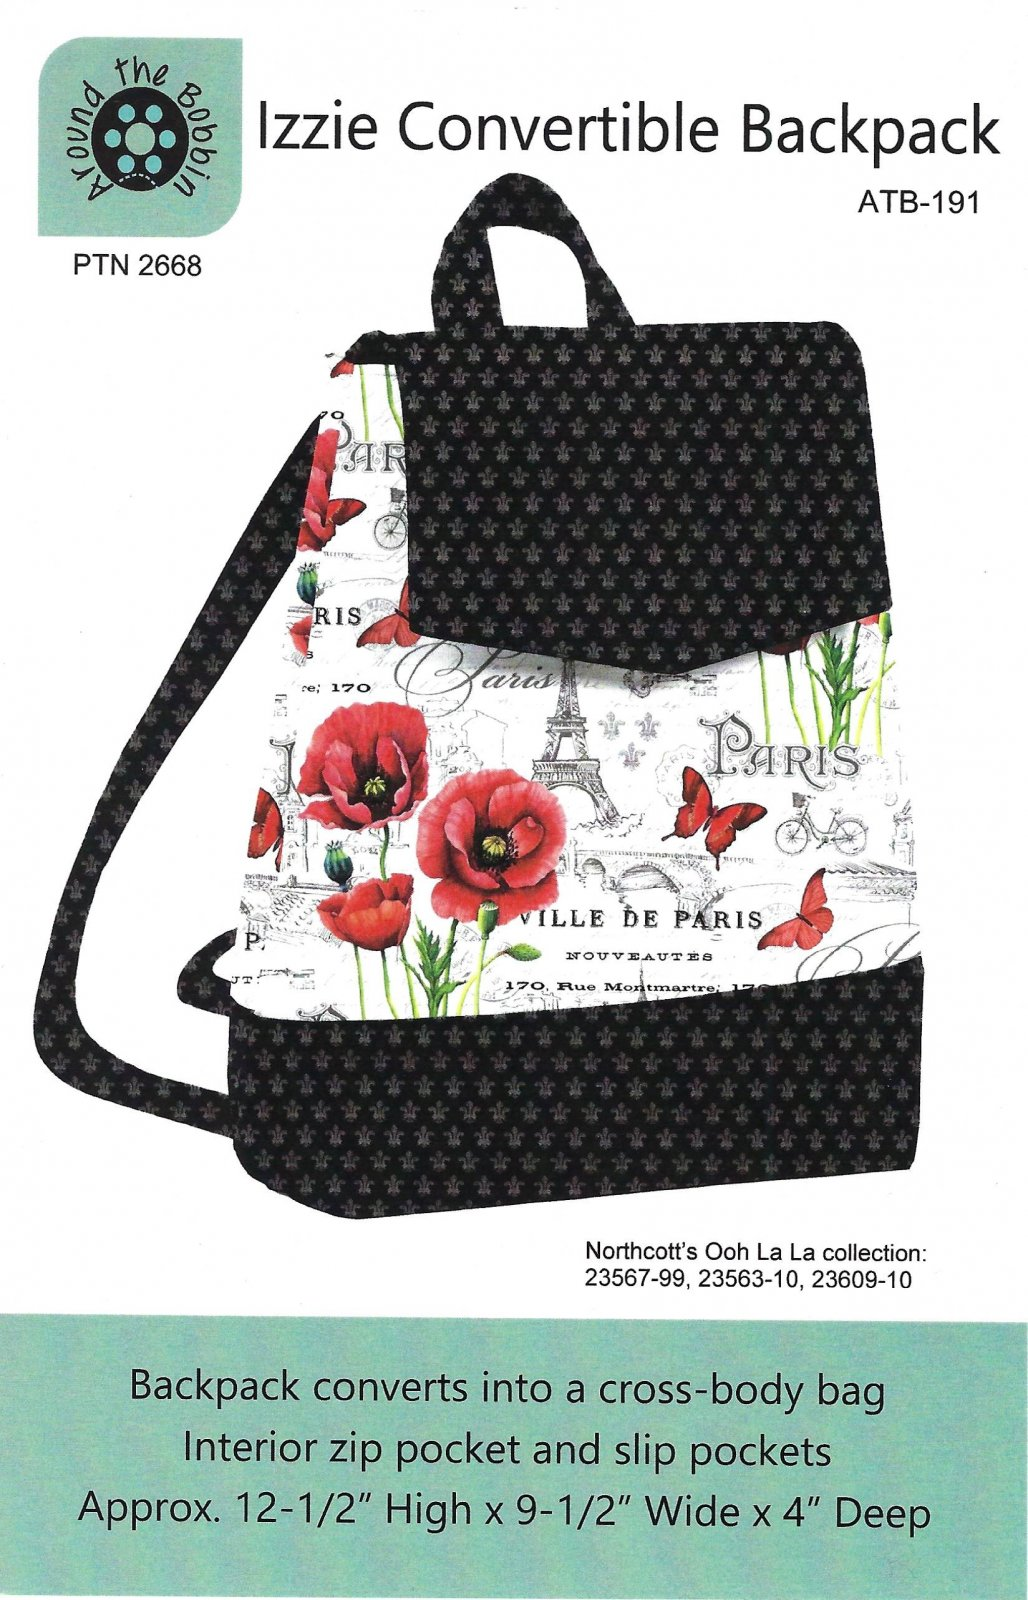 Izzie Convertible Backpack pattern